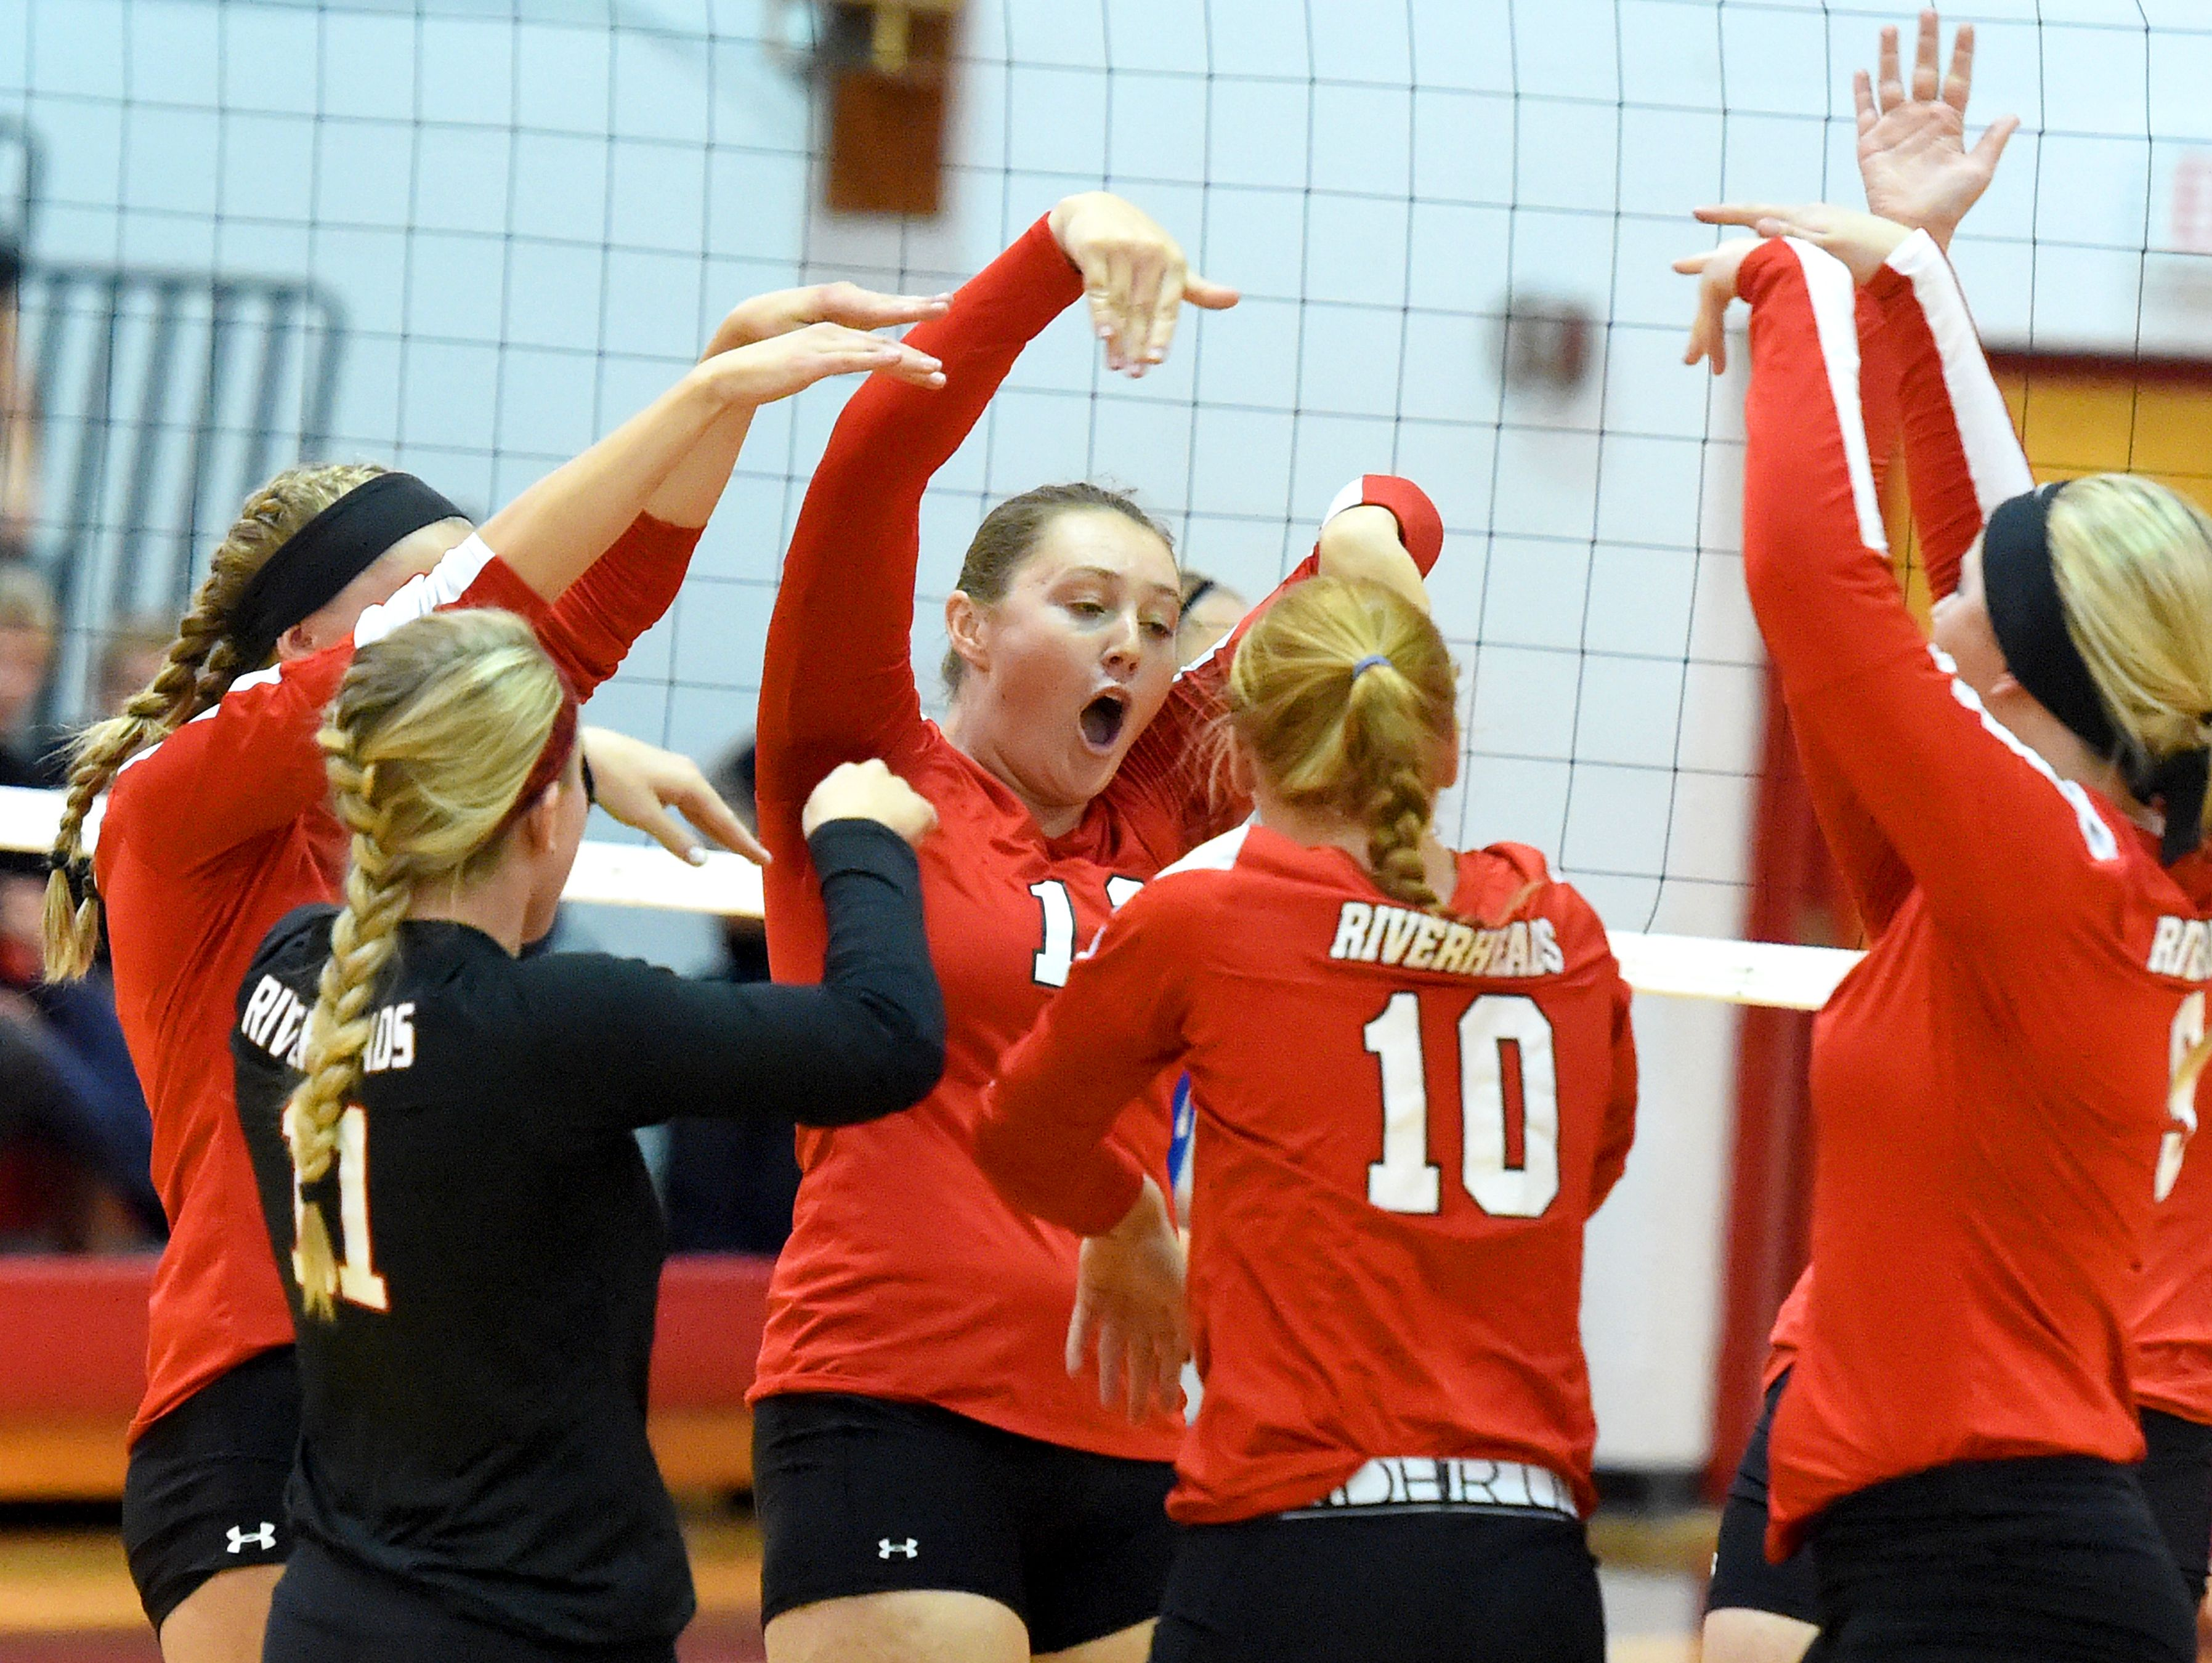 Riverheads' Emma Casto celebrates a point with teammates on the court during a volleyball match played in Greenville on Thursday, Sept. 9, 2016.